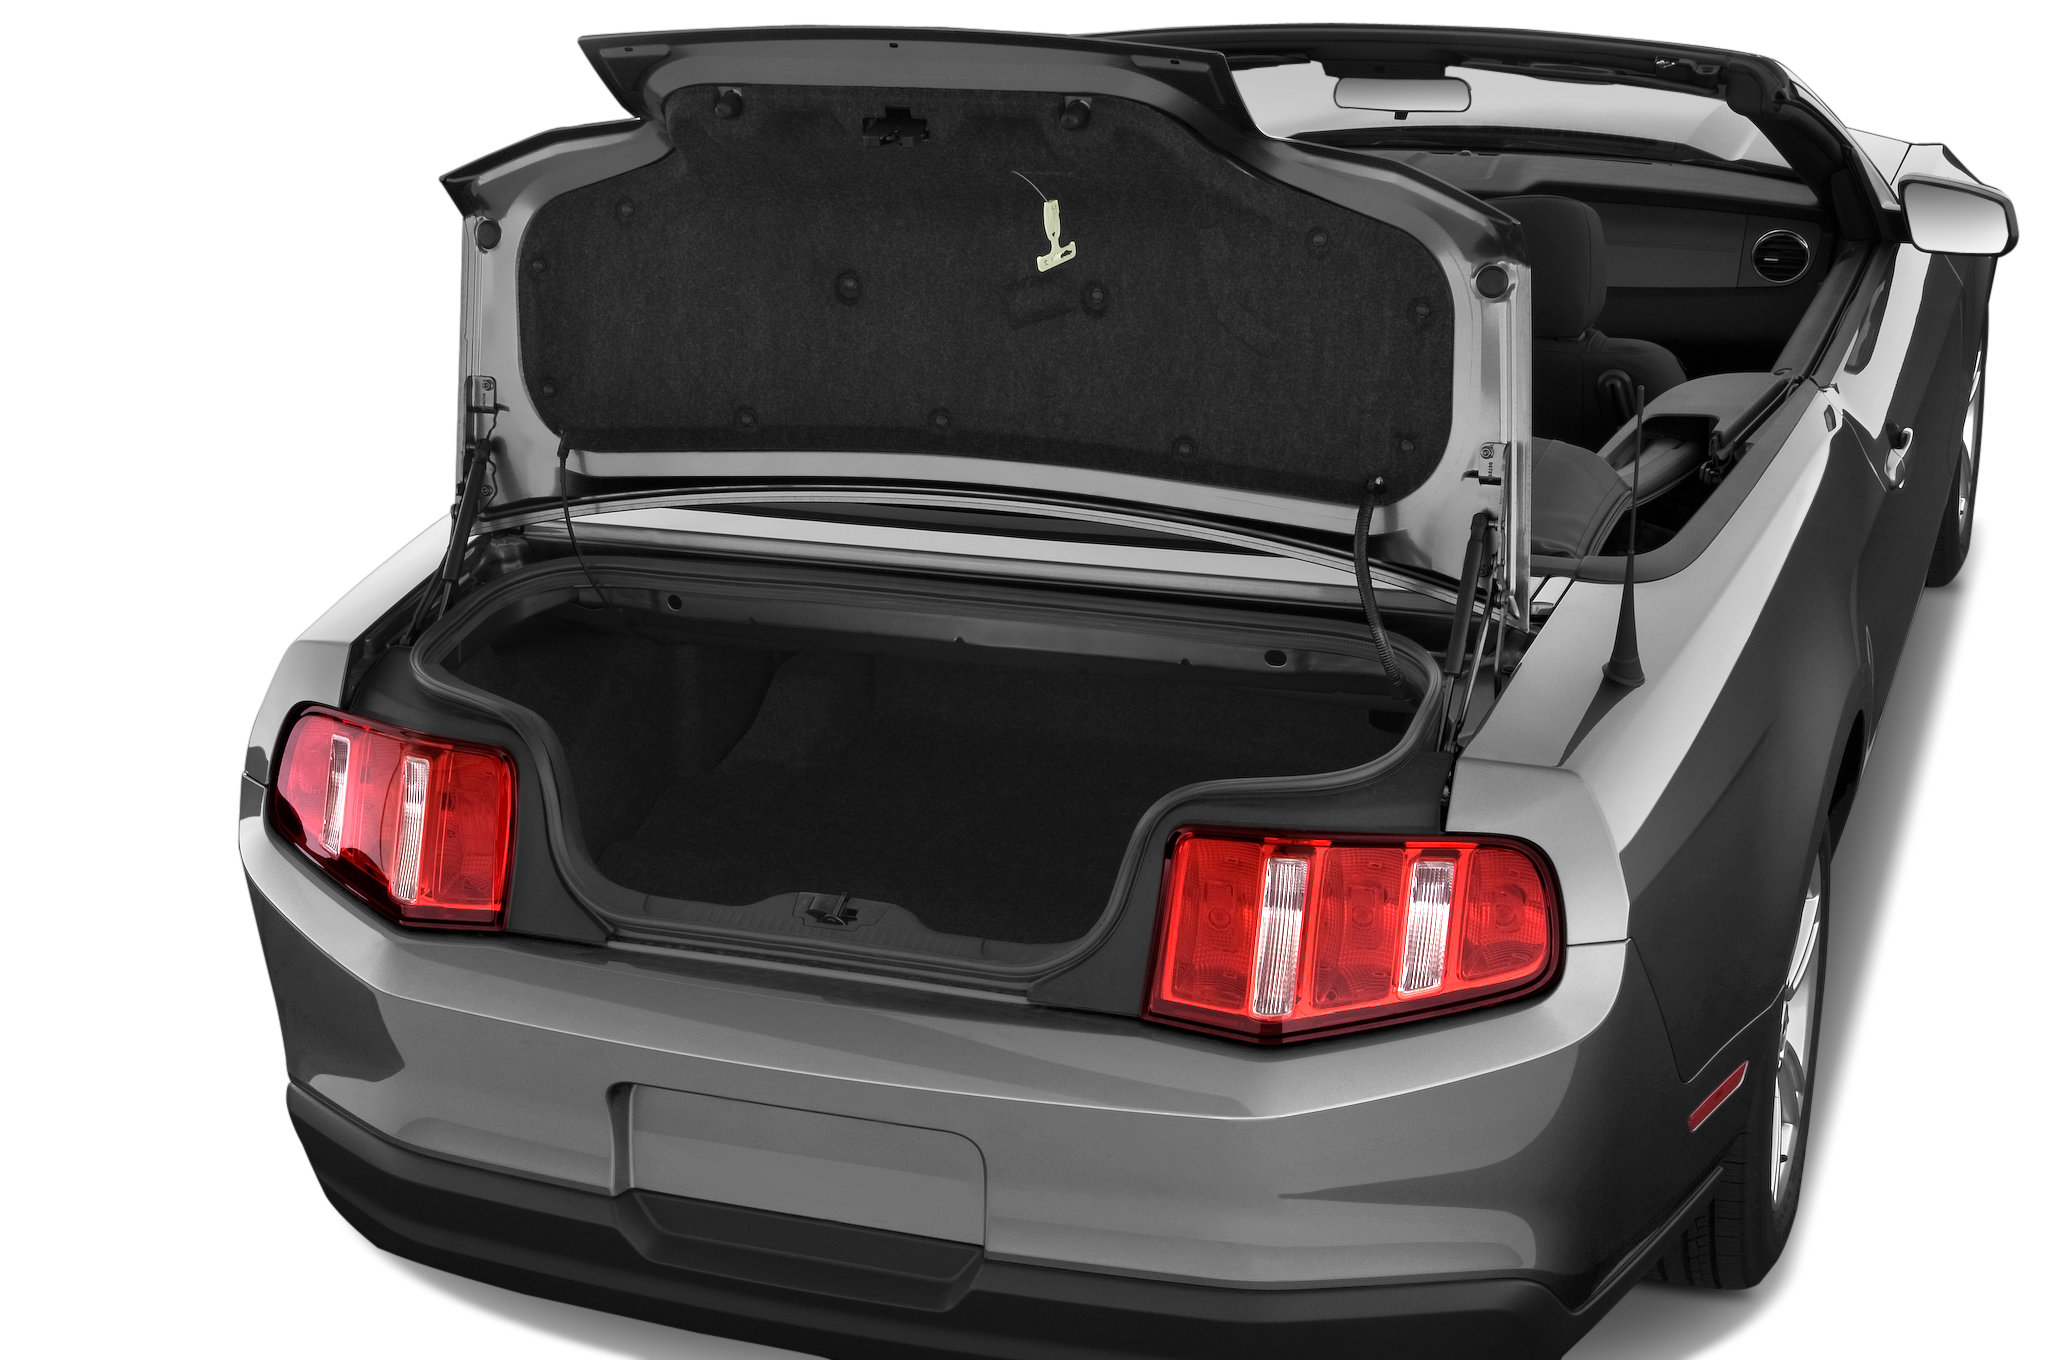 35101 - Ford Mustang Convertible 2010